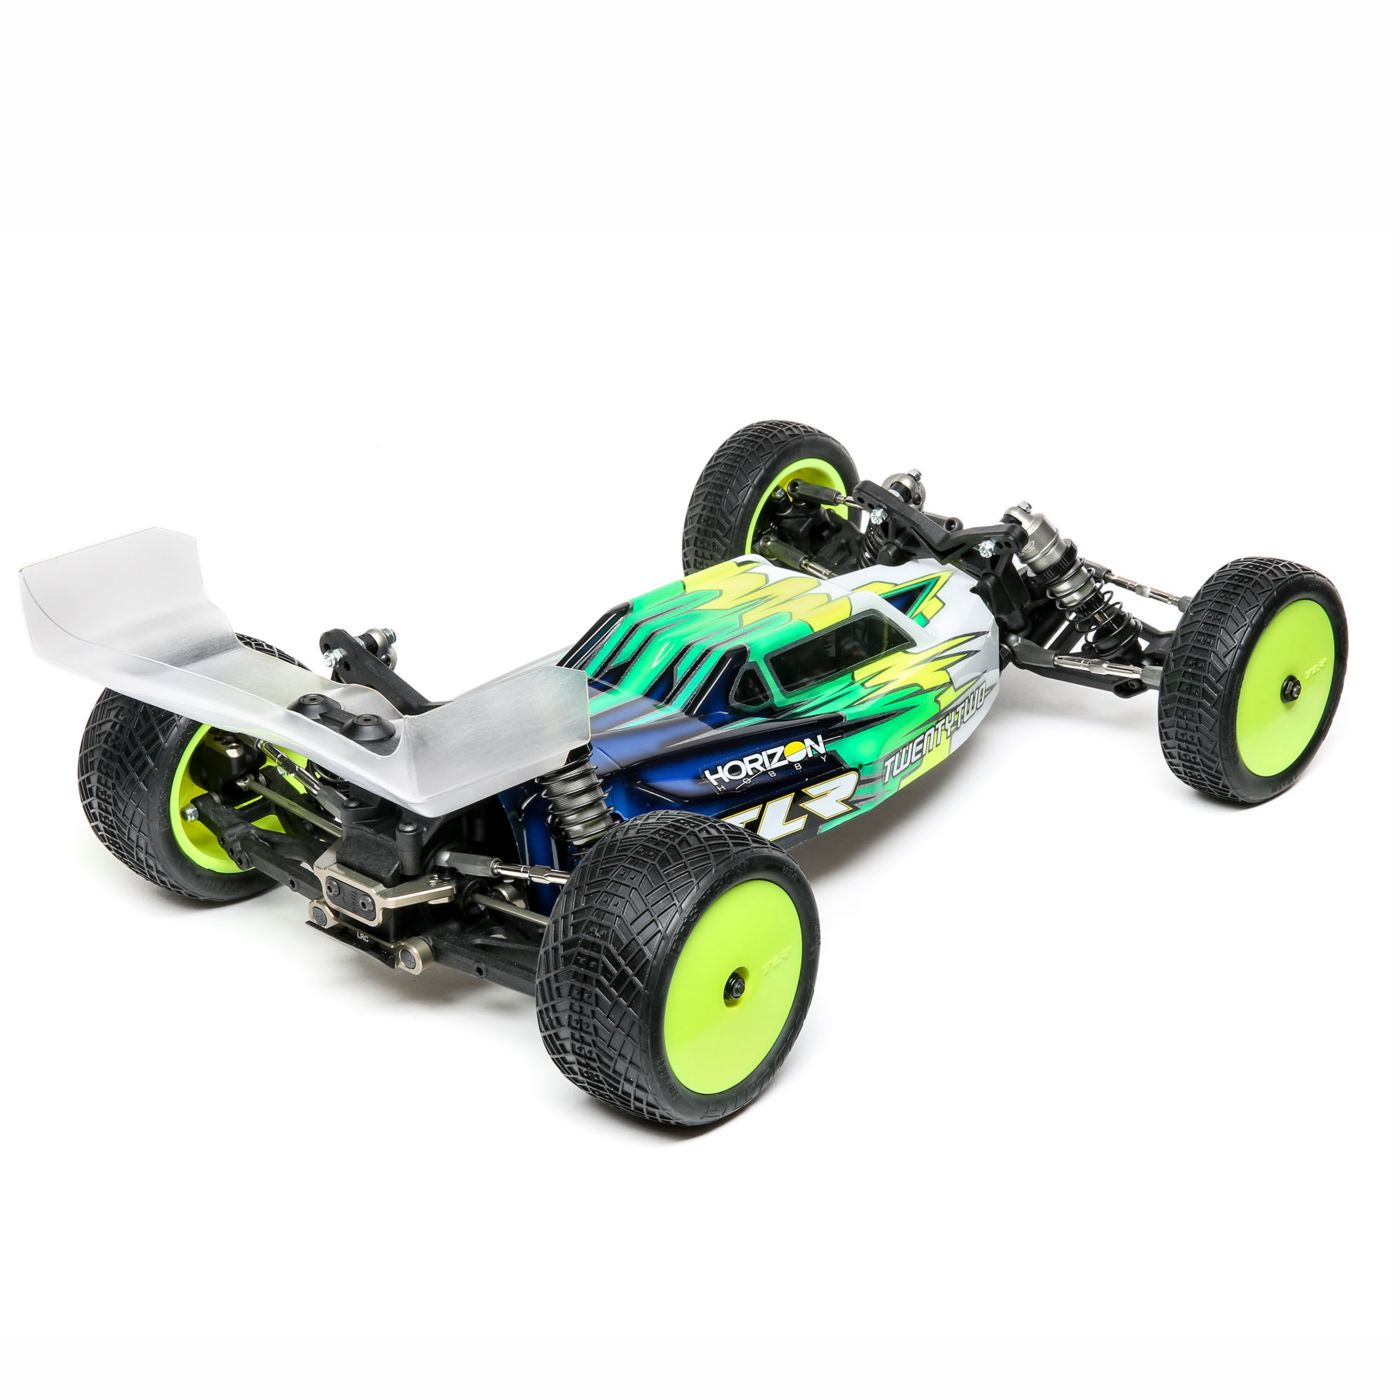 Team Losi Racing 22 4 Spec Racer 2WD Rear